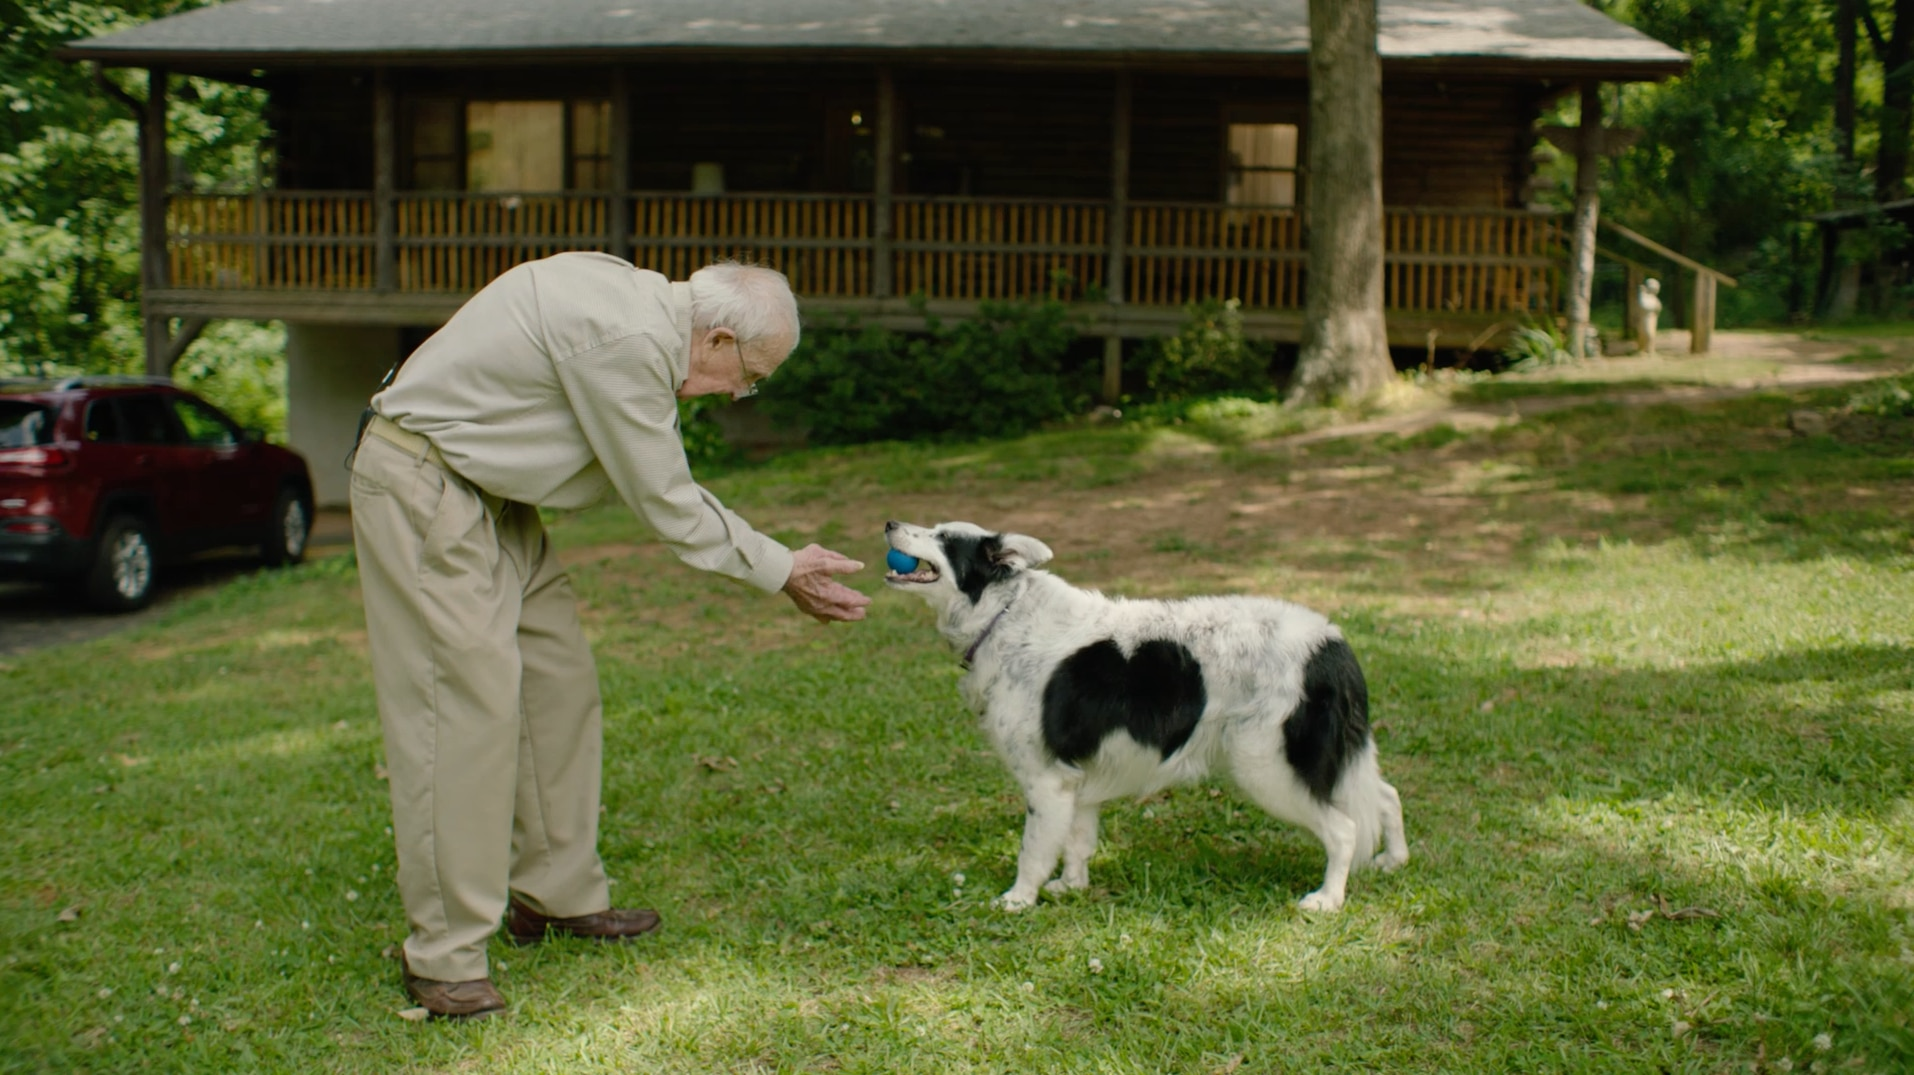 Chaser, a border collie who has learned over 1,000 words, gives a ball to her owner, John Pilley.